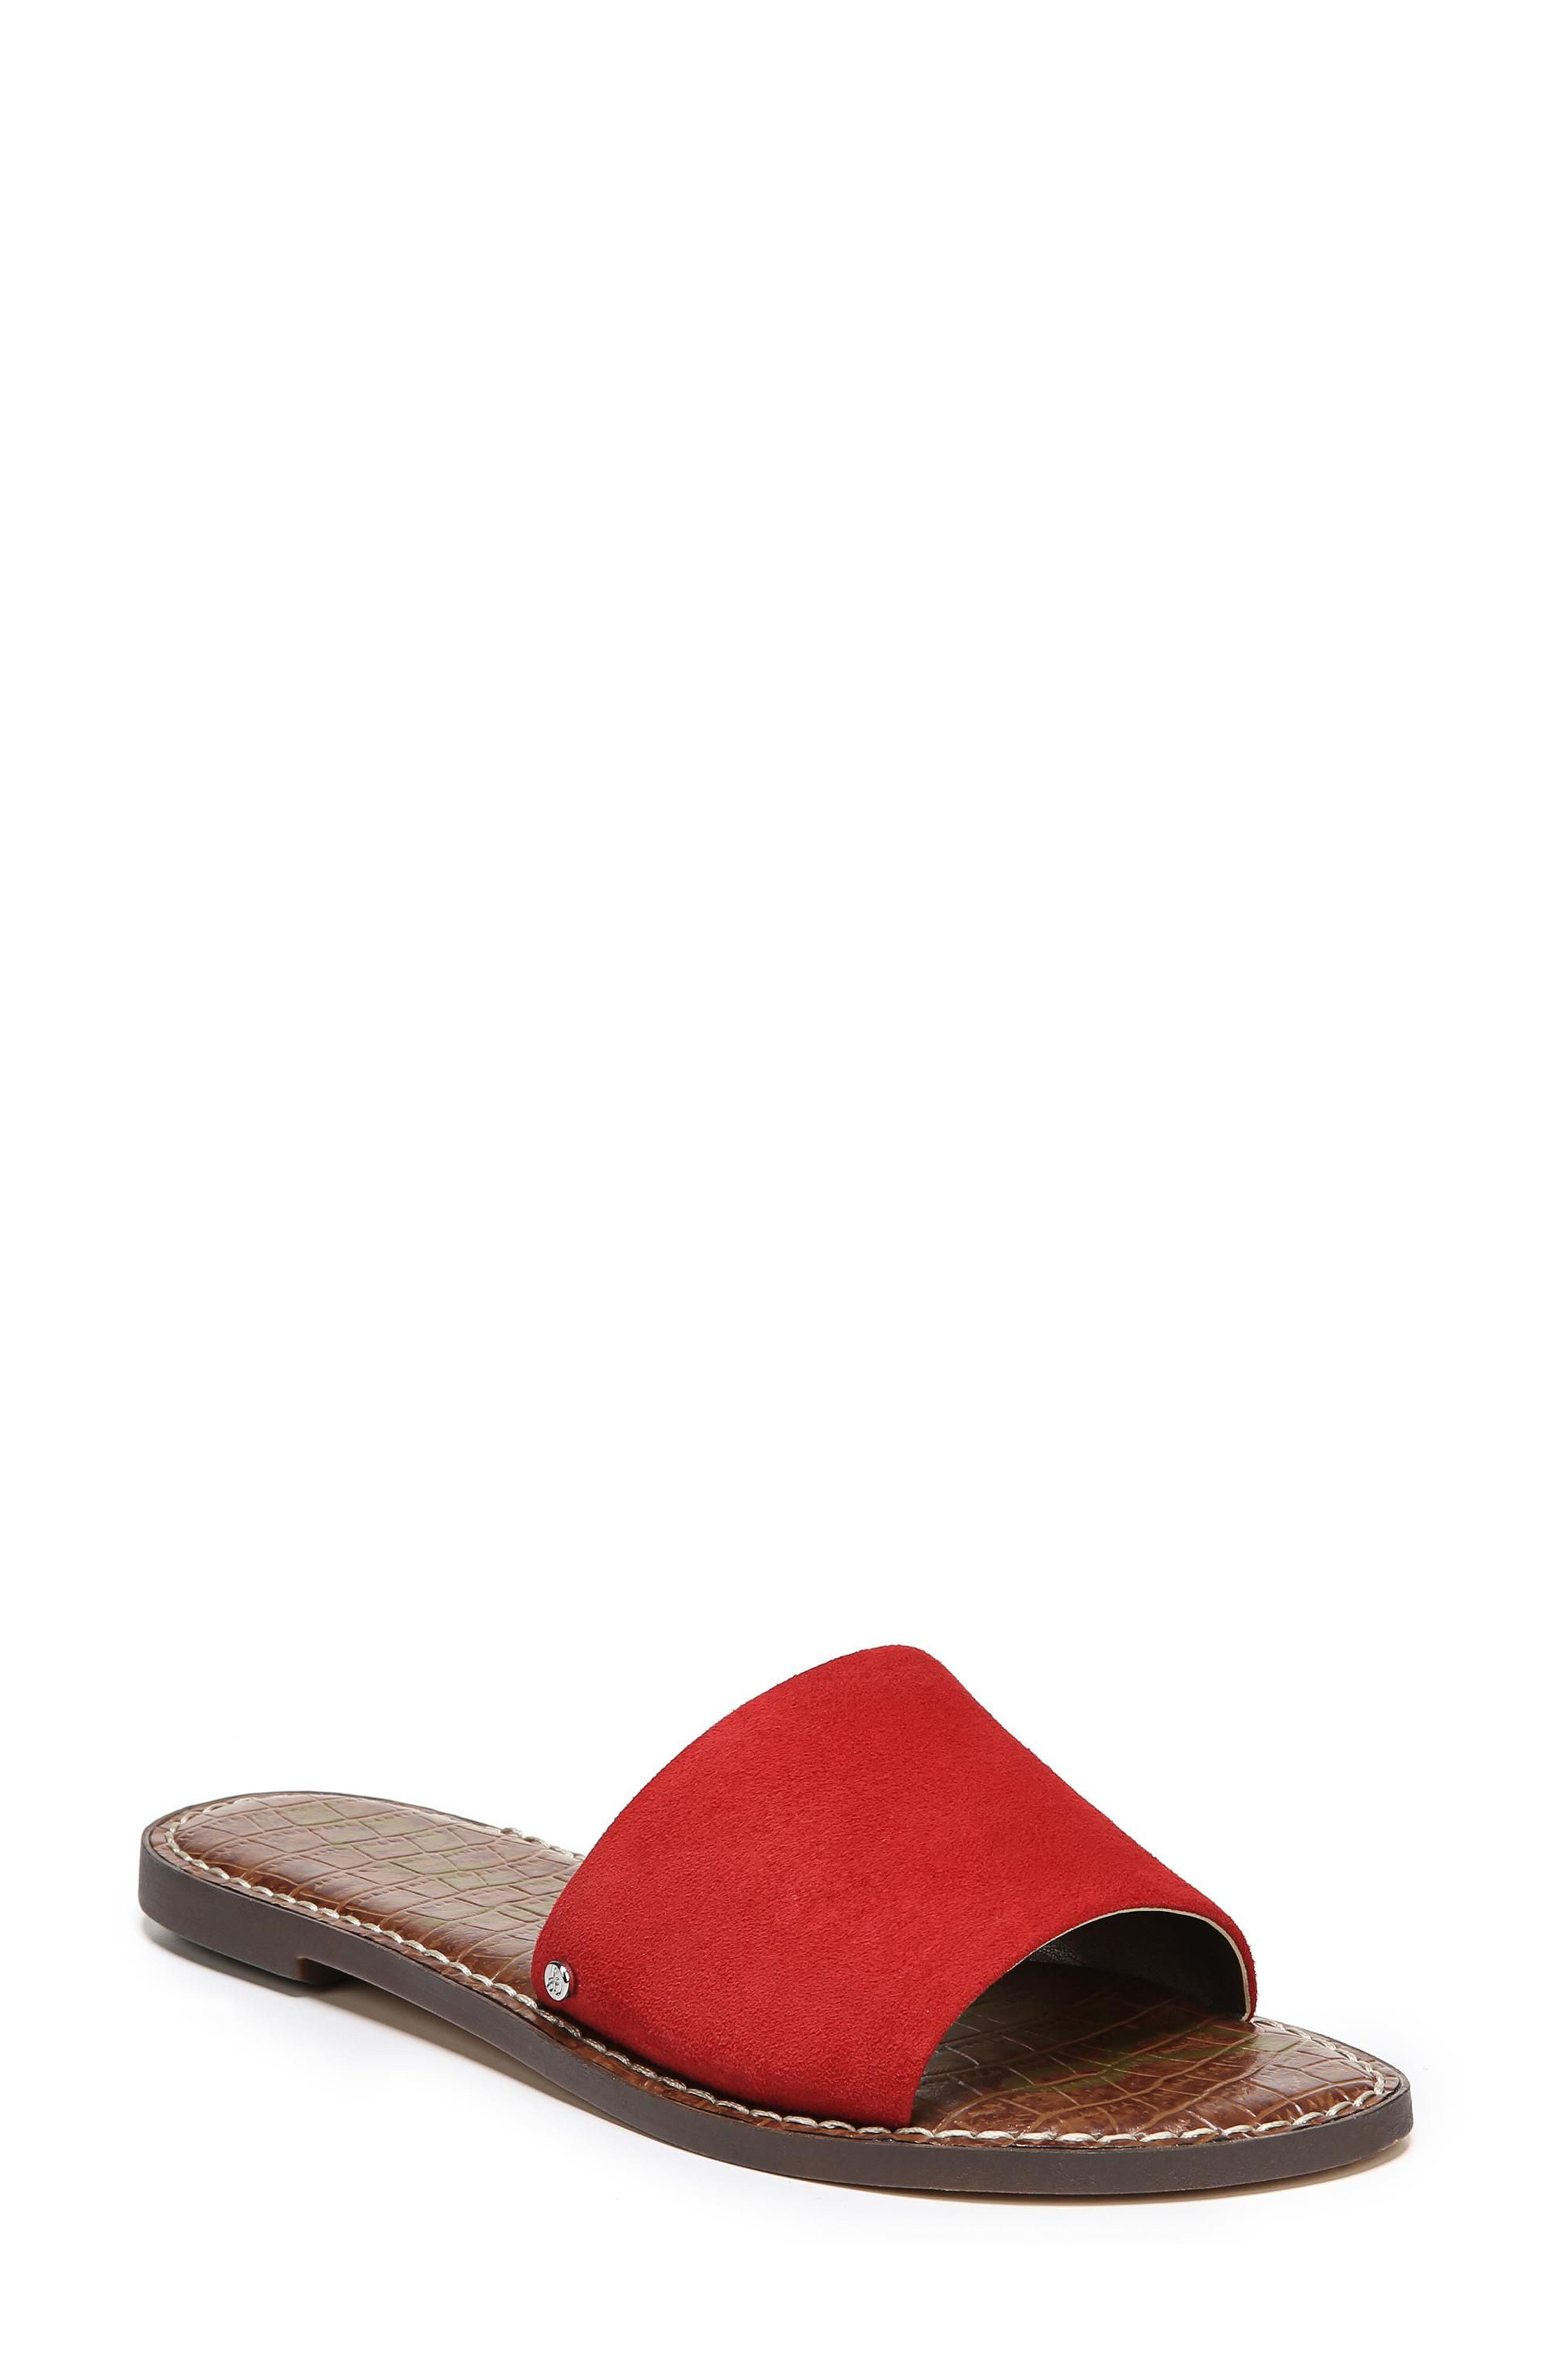 Gio Slide Sandal,                             Main thumbnail 1, color,                             Red Suede